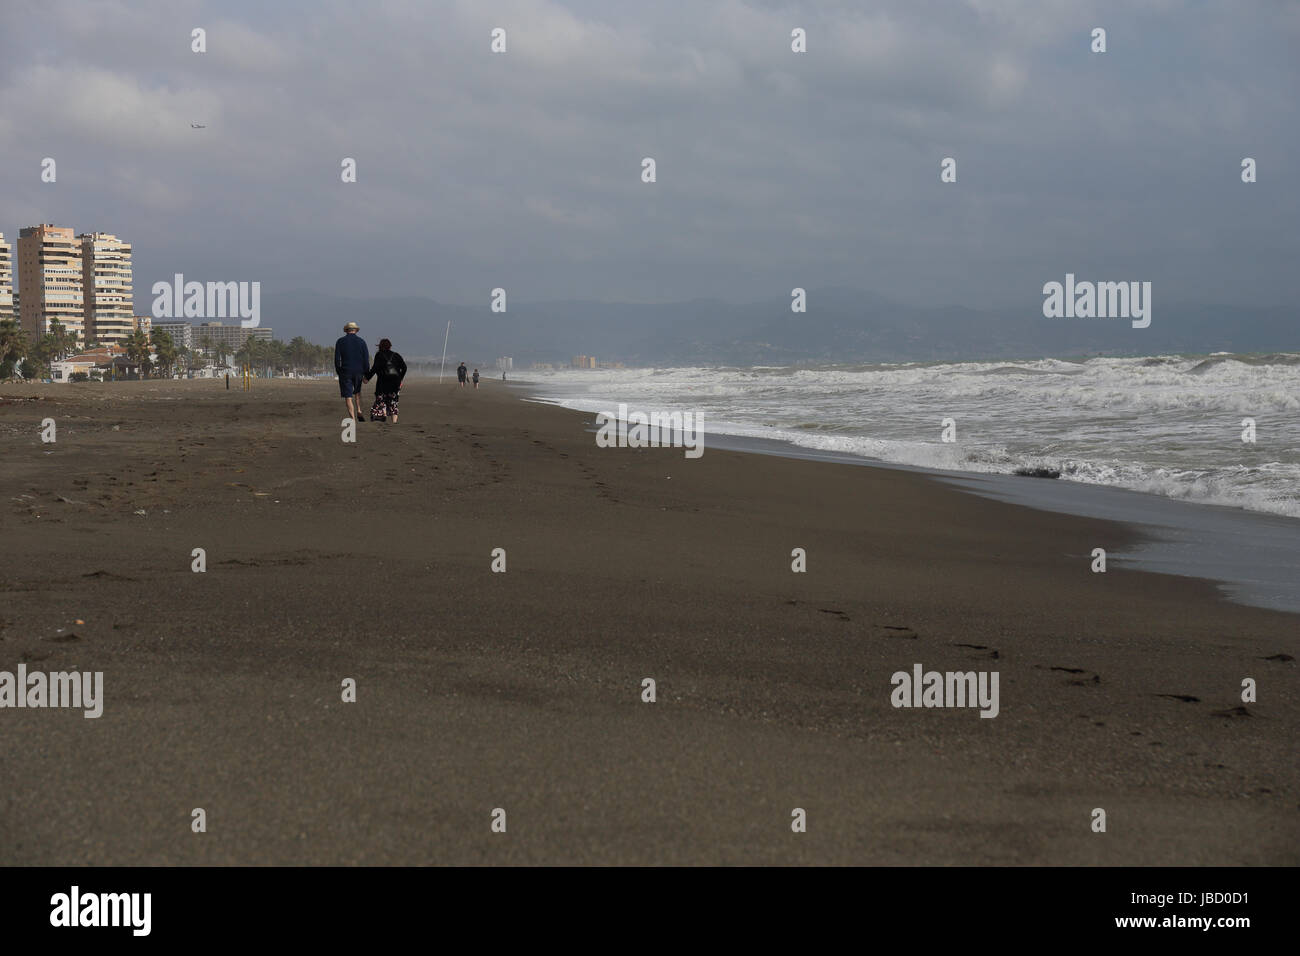 stormy-weather-in-february-on-the-beach-